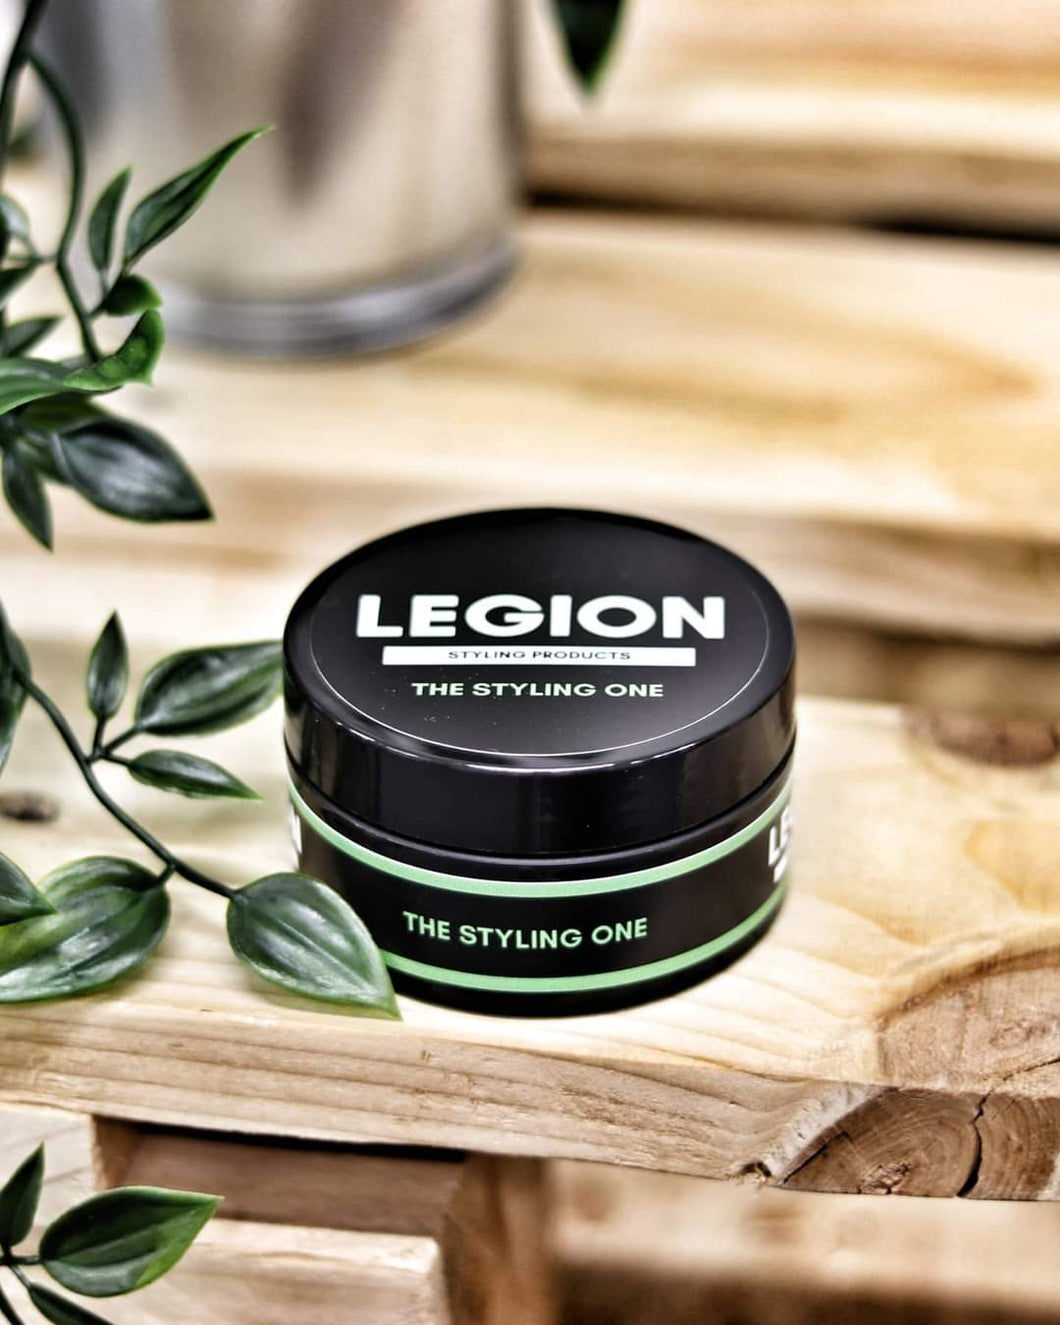 Legion Styling Products-The Styling One